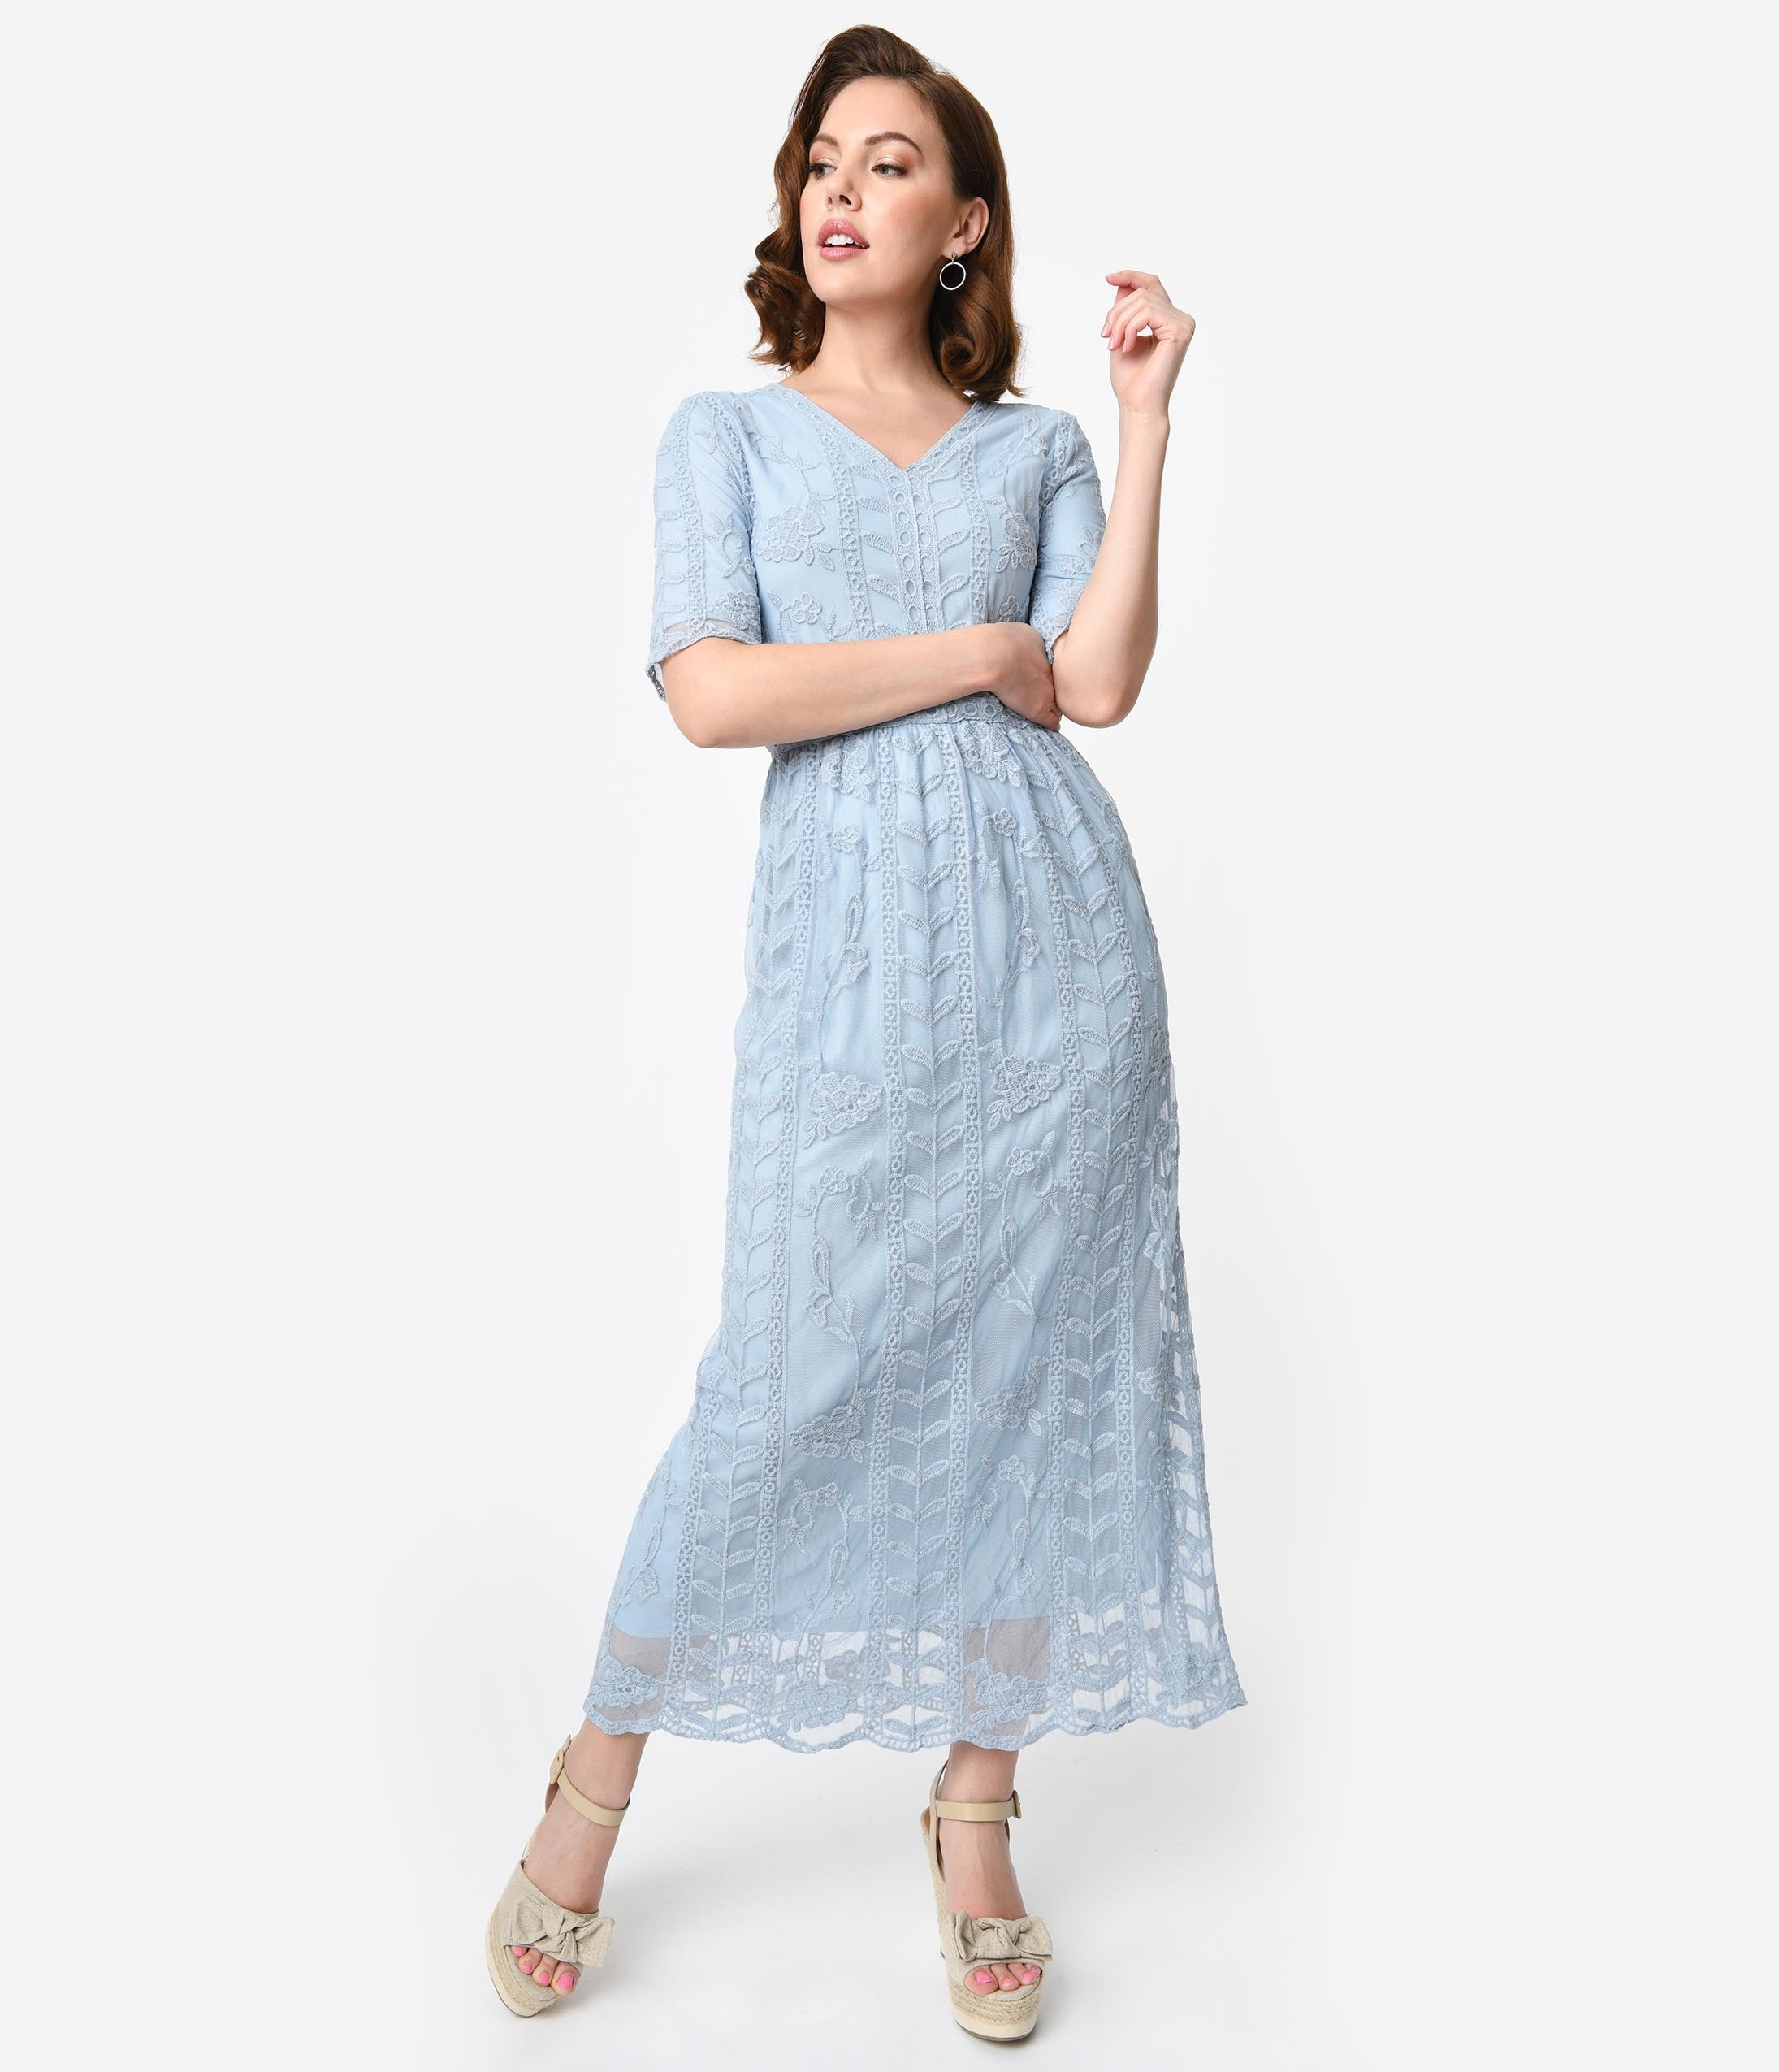 Vintage Tea Dresses, Floral Tea Dresses, Tea Length Dresses 1940S Style Antique Blue Lace Short Sleeved Long Dress $58.00 AT vintagedancer.com